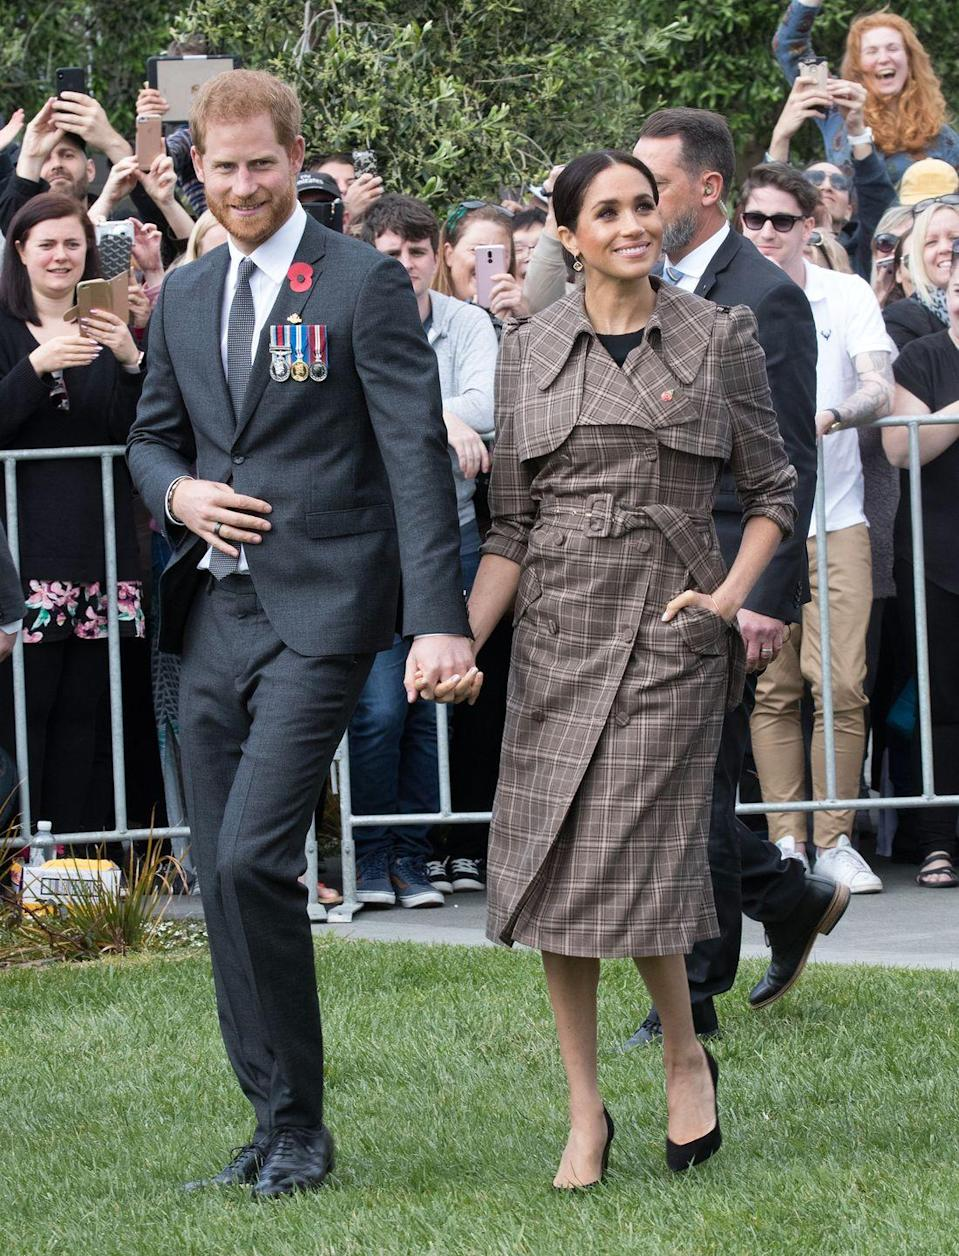 "<p>Harry and Meghan touched down in New Zealand with a busy day of royal engagements ahead. <a href=""https://www.townandcountrymag.com/style/fashion-trends/a24274859/meghan-markle-plaid-trench-coat-royal-tour-wellington-new-zealand-photo/"" rel=""nofollow noopener"" target=""_blank"" data-ylk=""slk:The Duchess wore a plaid trench"" class=""link rapid-noclick-resp"">The Duchess wore a plaid trench </a>by Karen Walker with a black dress by ASOS. She also wore a pair of heels by Sarah Flint, and wore a poppy pin to honor soldiers who have died in war. </p><p><a class=""link rapid-noclick-resp"" href=""https://go.redirectingat.com?id=74968X1596630&url=https%3A%2F%2Fus.asos.com%2Fasos-design%2Fasos-design-wiggle-mini-dress%2Fprd%2F10129382%3Faffid%3D10607%26pubref%3D1171%26transaction_id%3D102e85e635c05dce6577c495c7274e&sref=https%3A%2F%2Fwww.townandcountrymag.com%2Fstyle%2Ffashion-trends%2Fg3272%2Fmeghan-markle-preppy-style%2F"" rel=""nofollow noopener"" target=""_blank"" data-ylk=""slk:SHOP NOW"">SHOP NOW</a> <em>ASOS Wiggle Mini Dress, $56</em></p>"